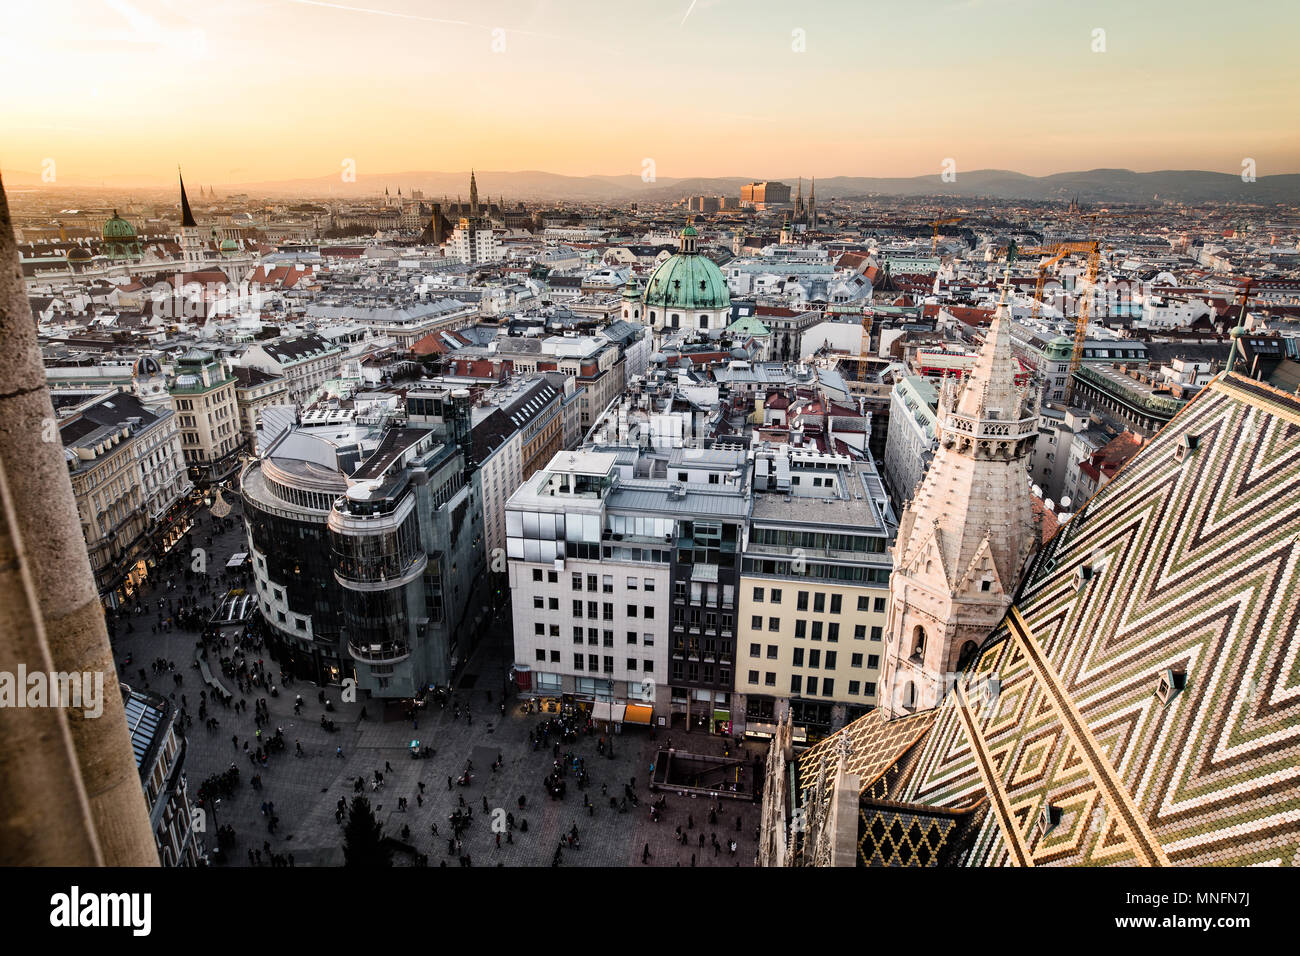 Wien city skyline as seen from the top of St. Stephan dome - Stock Image